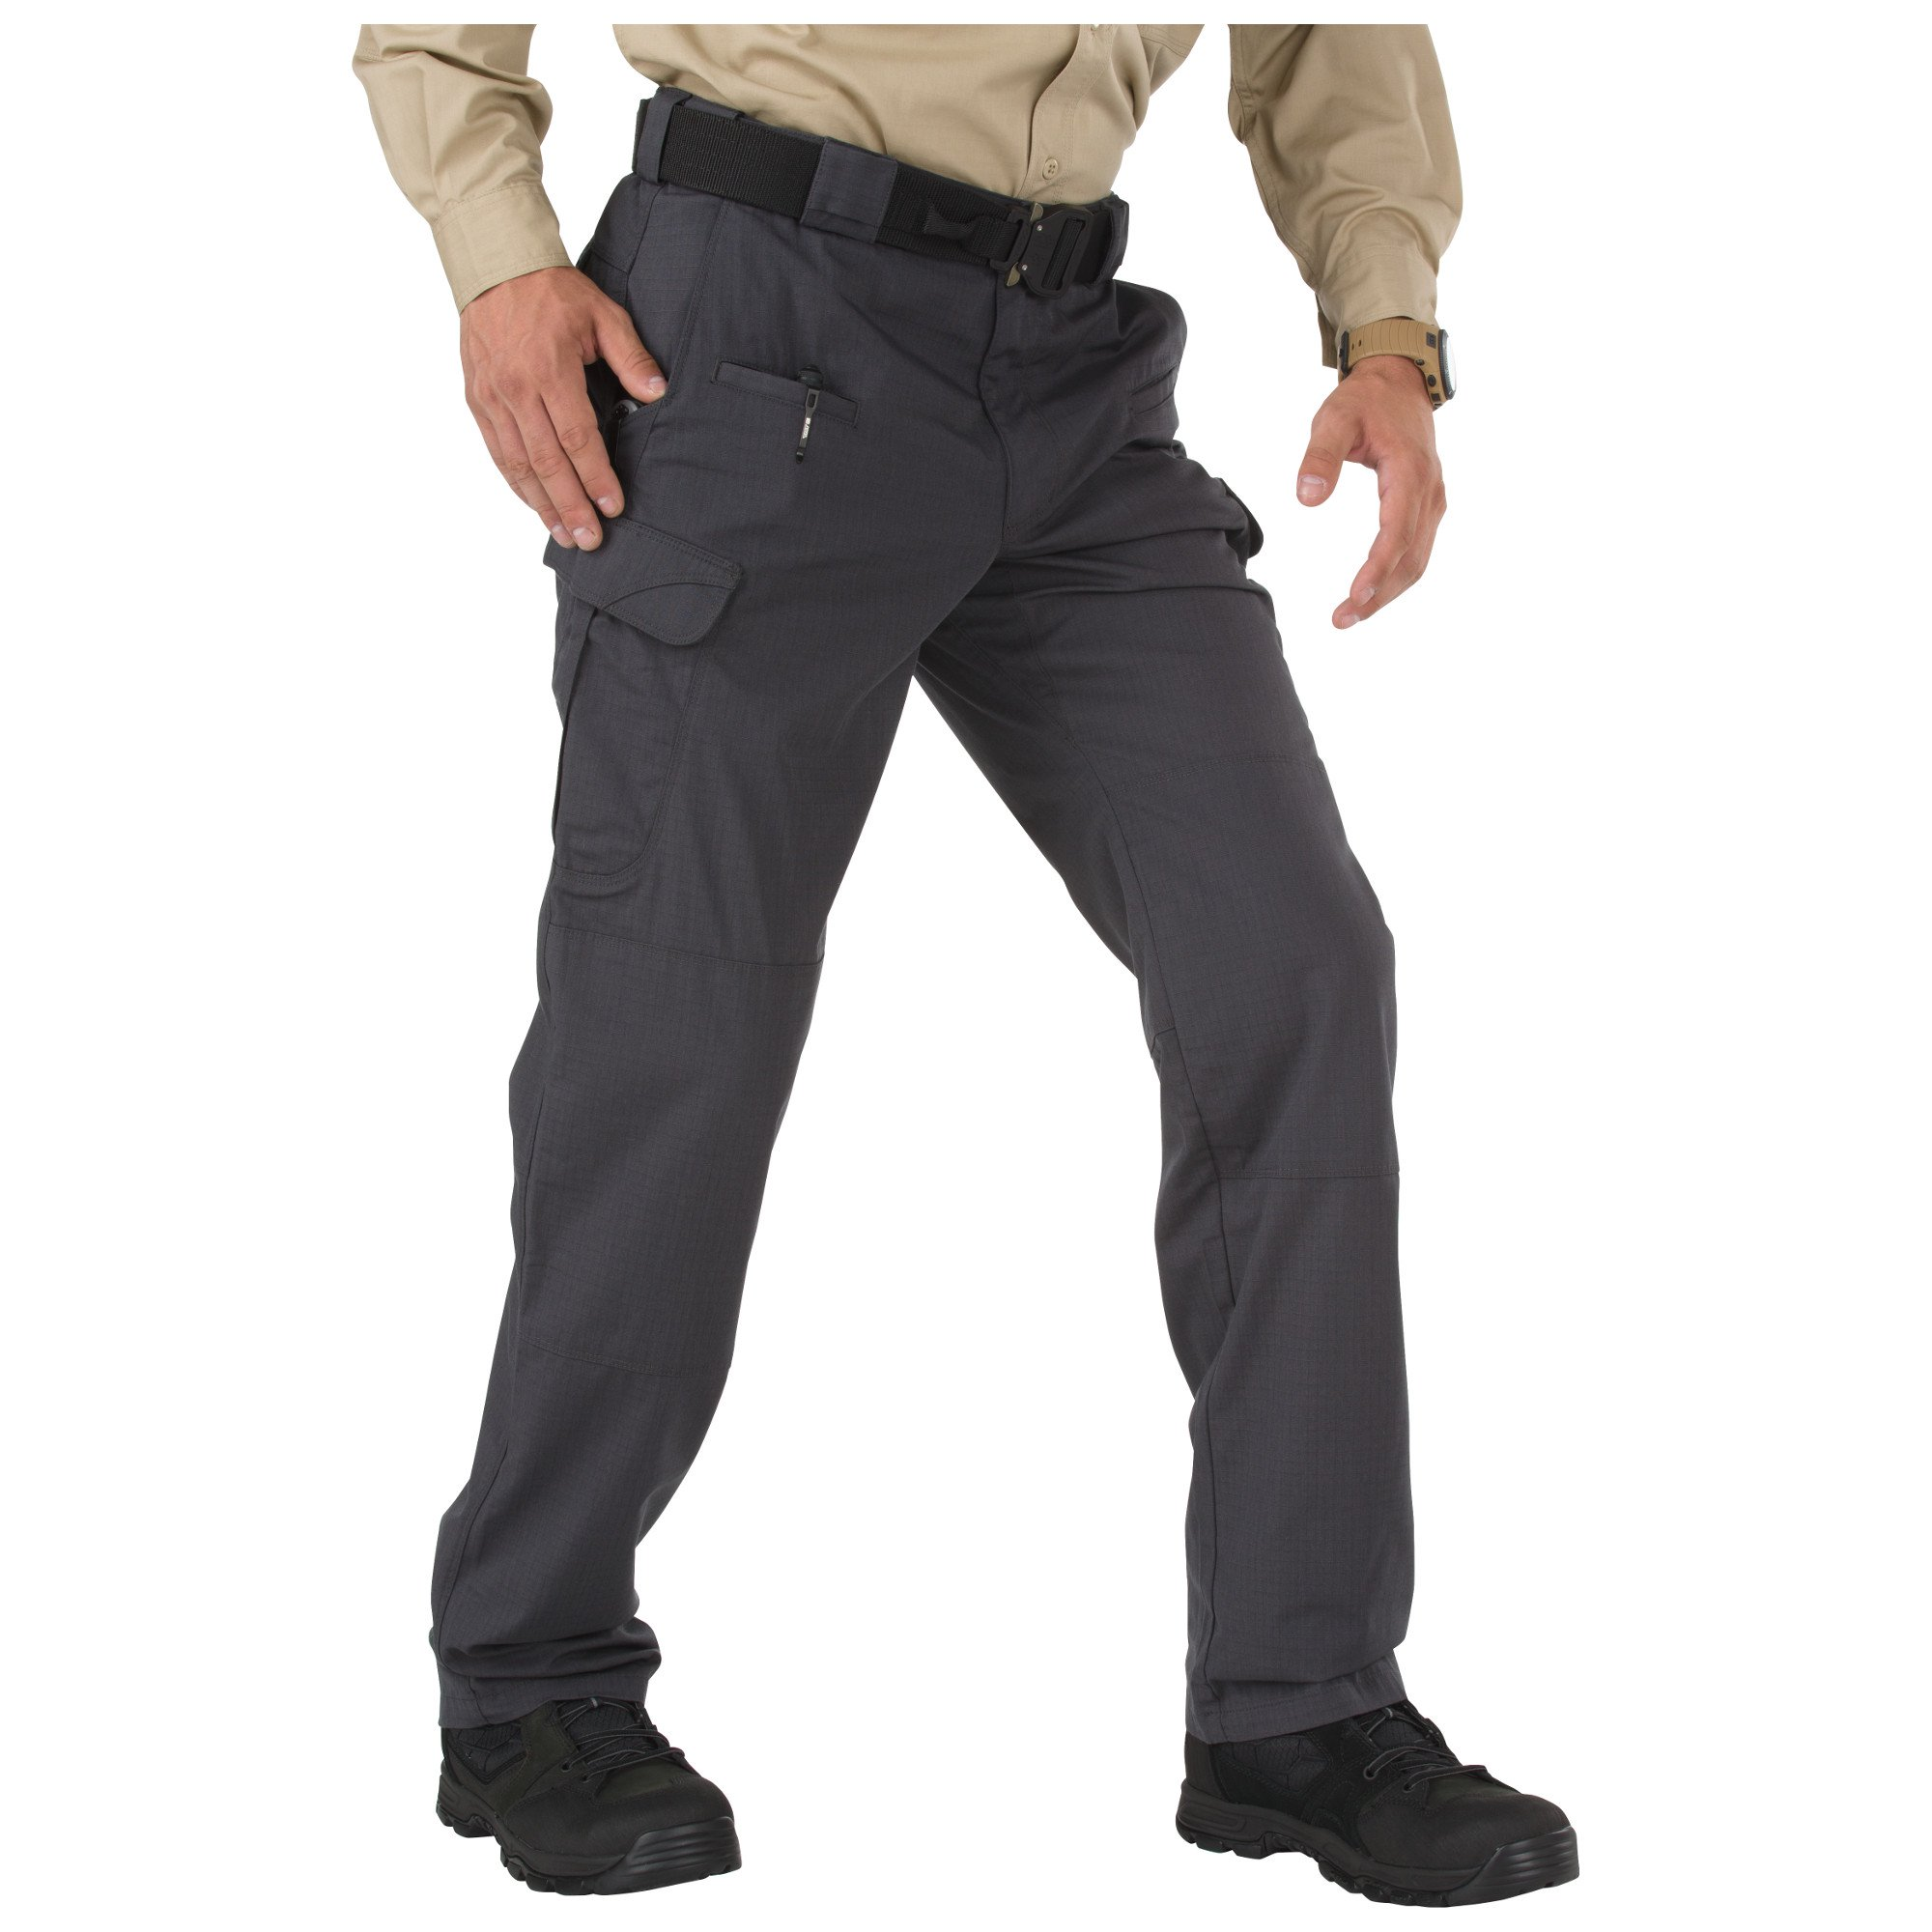 5.11 Stryke Pant – Charcoal